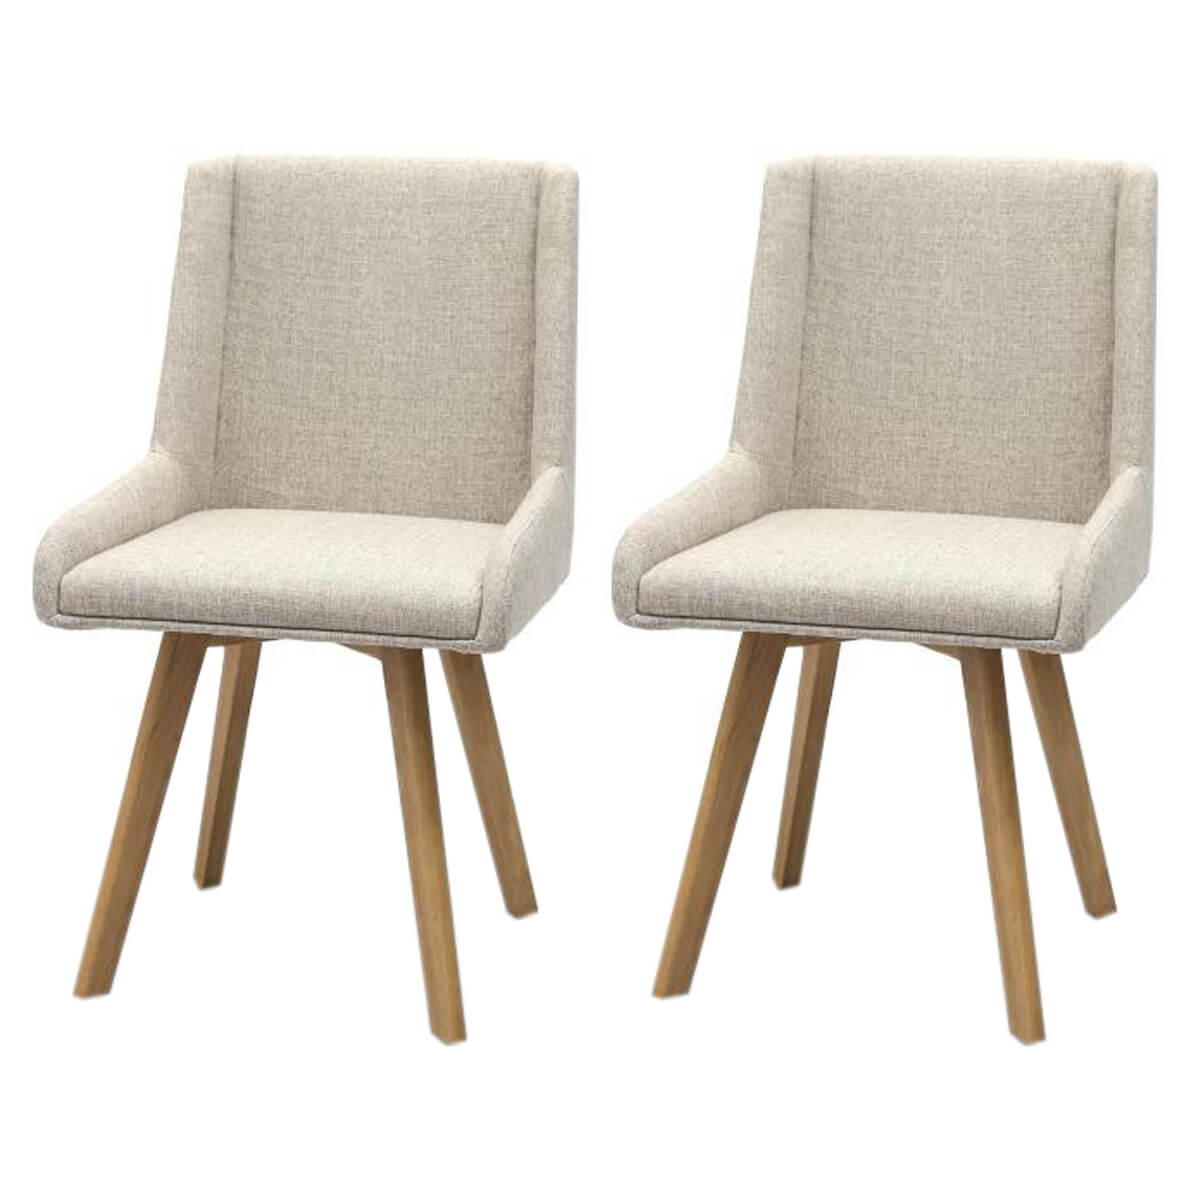 Skandi Dining Chairs Fabric Natural